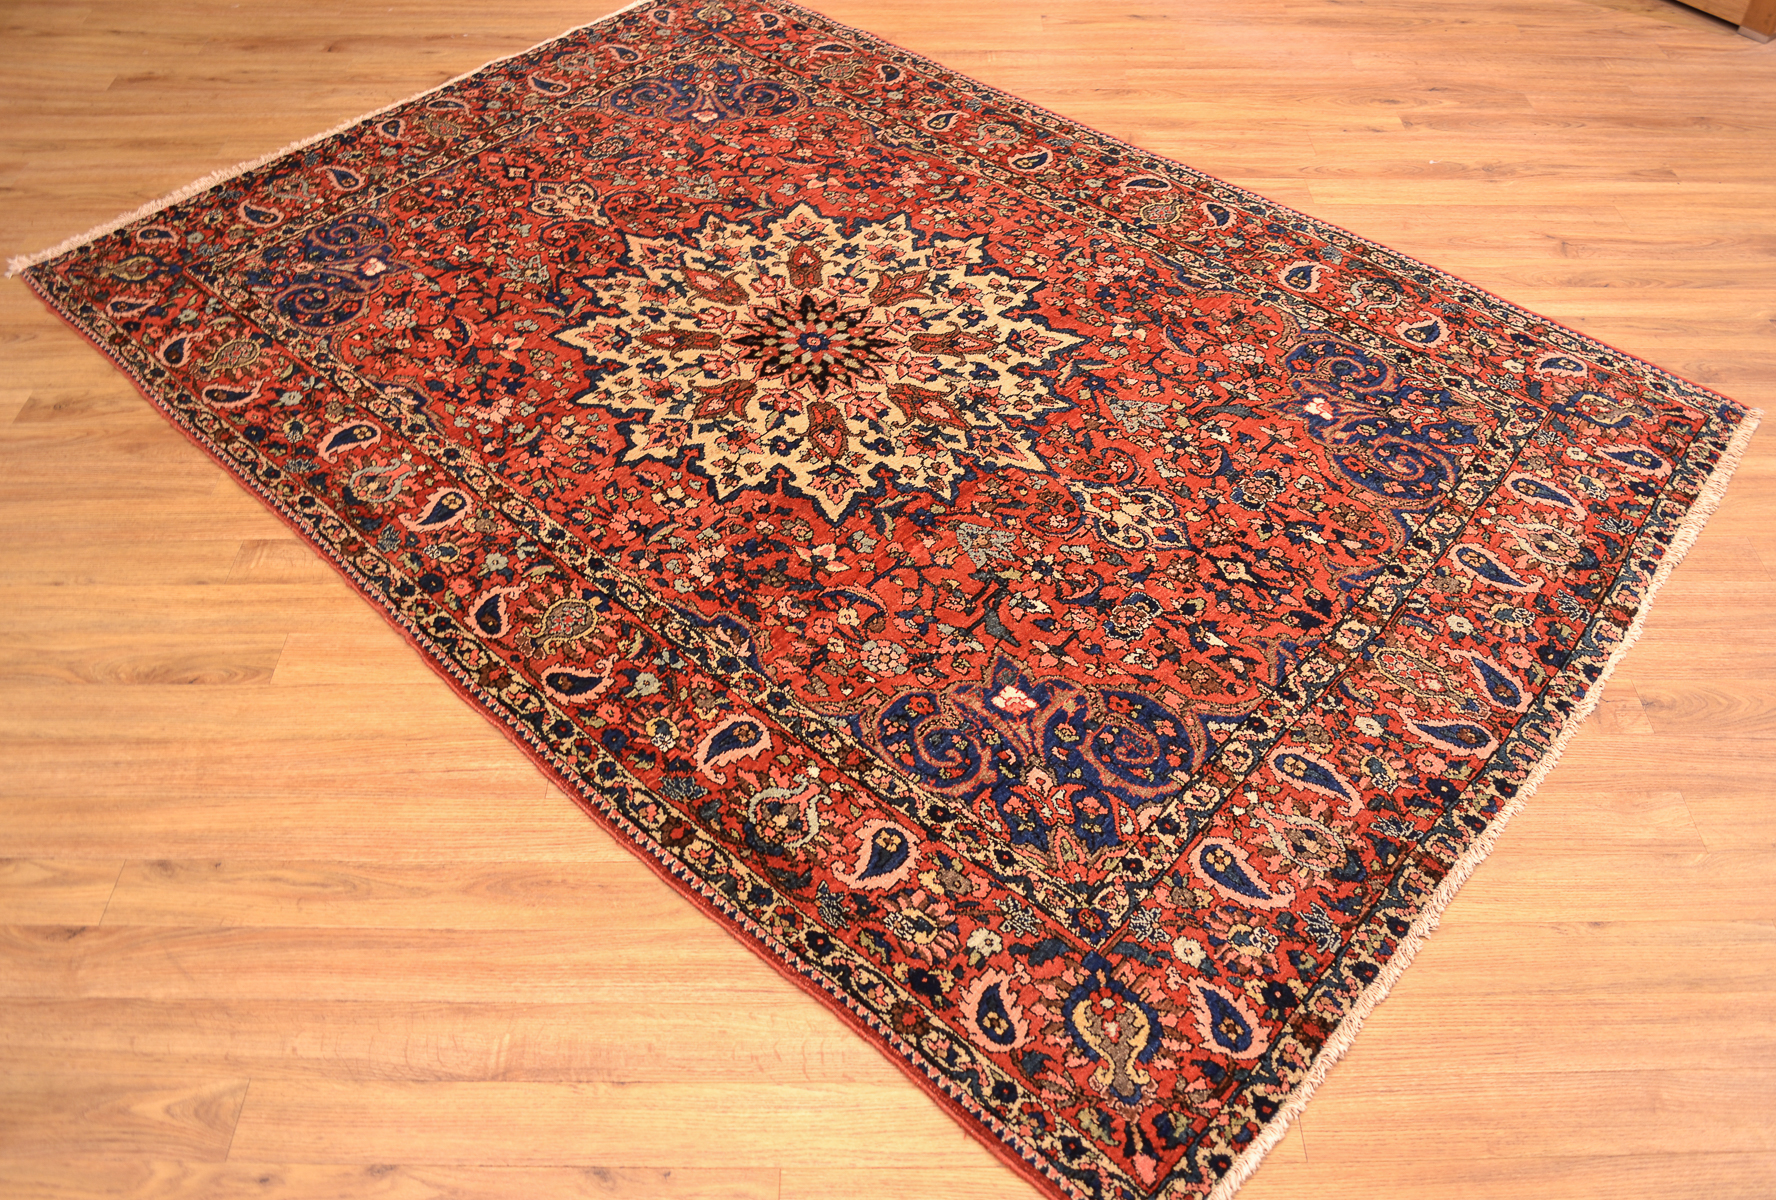 Persian Antique Bakhtiar Rug The Oriental Rug Merchant